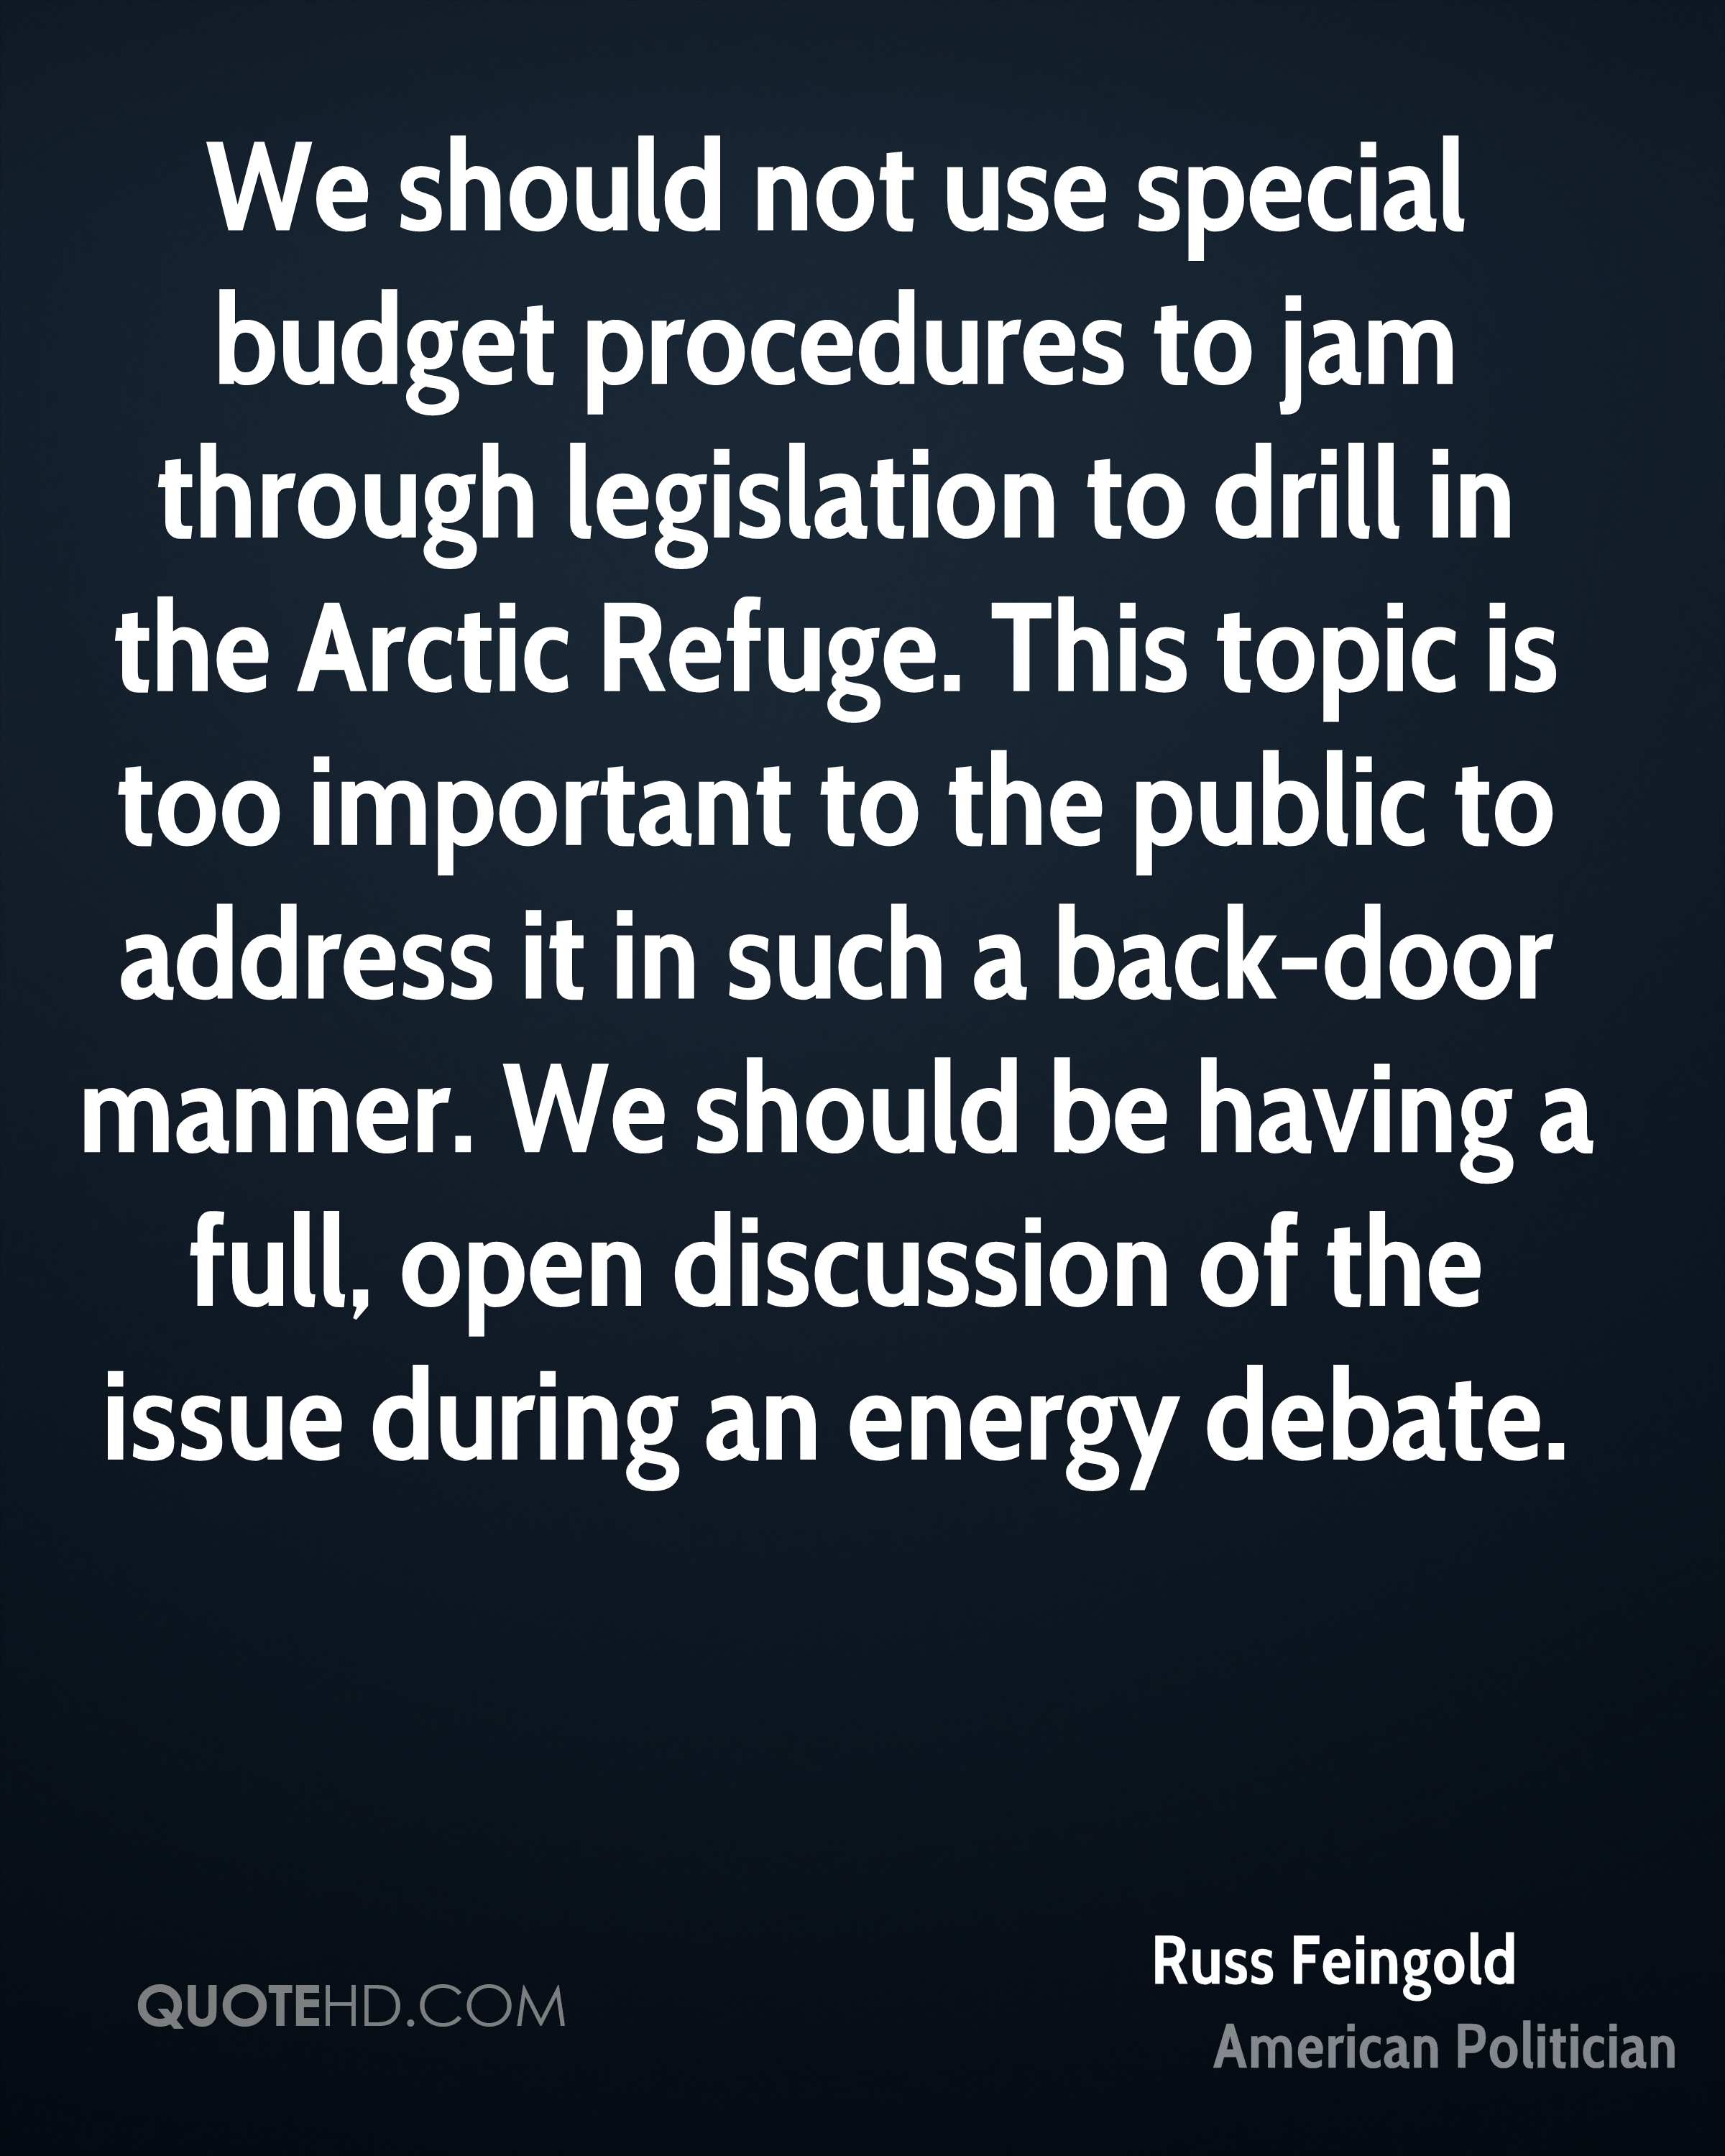 We should not use special budget procedures to jam through legislation to drill in the Arctic Refuge. This topic is too important to the public to address it in such a back-door manner. We should be having a full, open discussion of the issue during an energy debate.